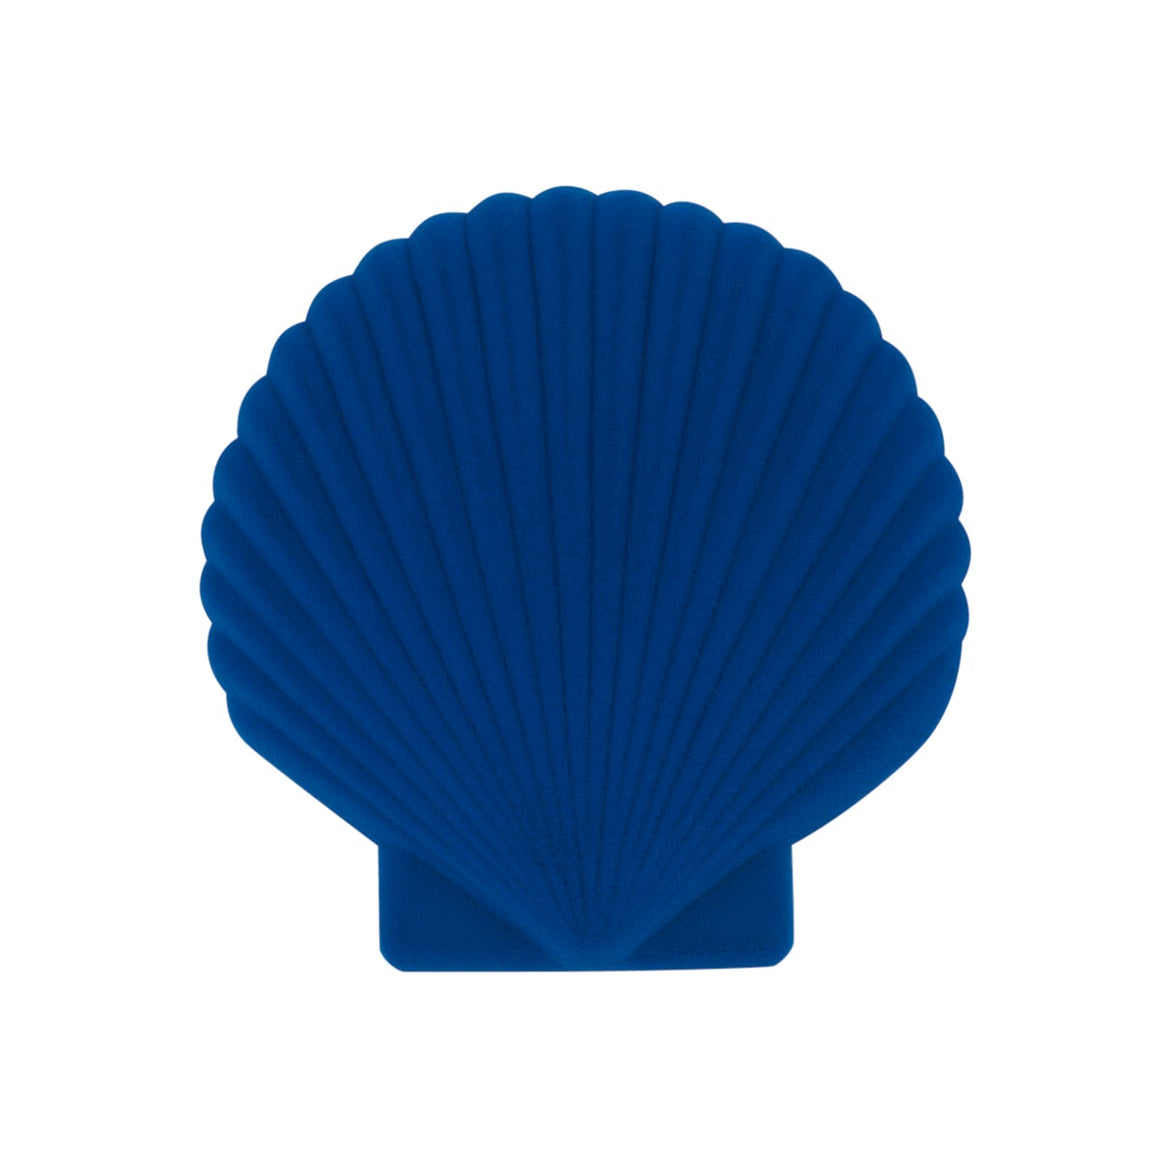 A blue velveteen jewellery box in the shape of a shell